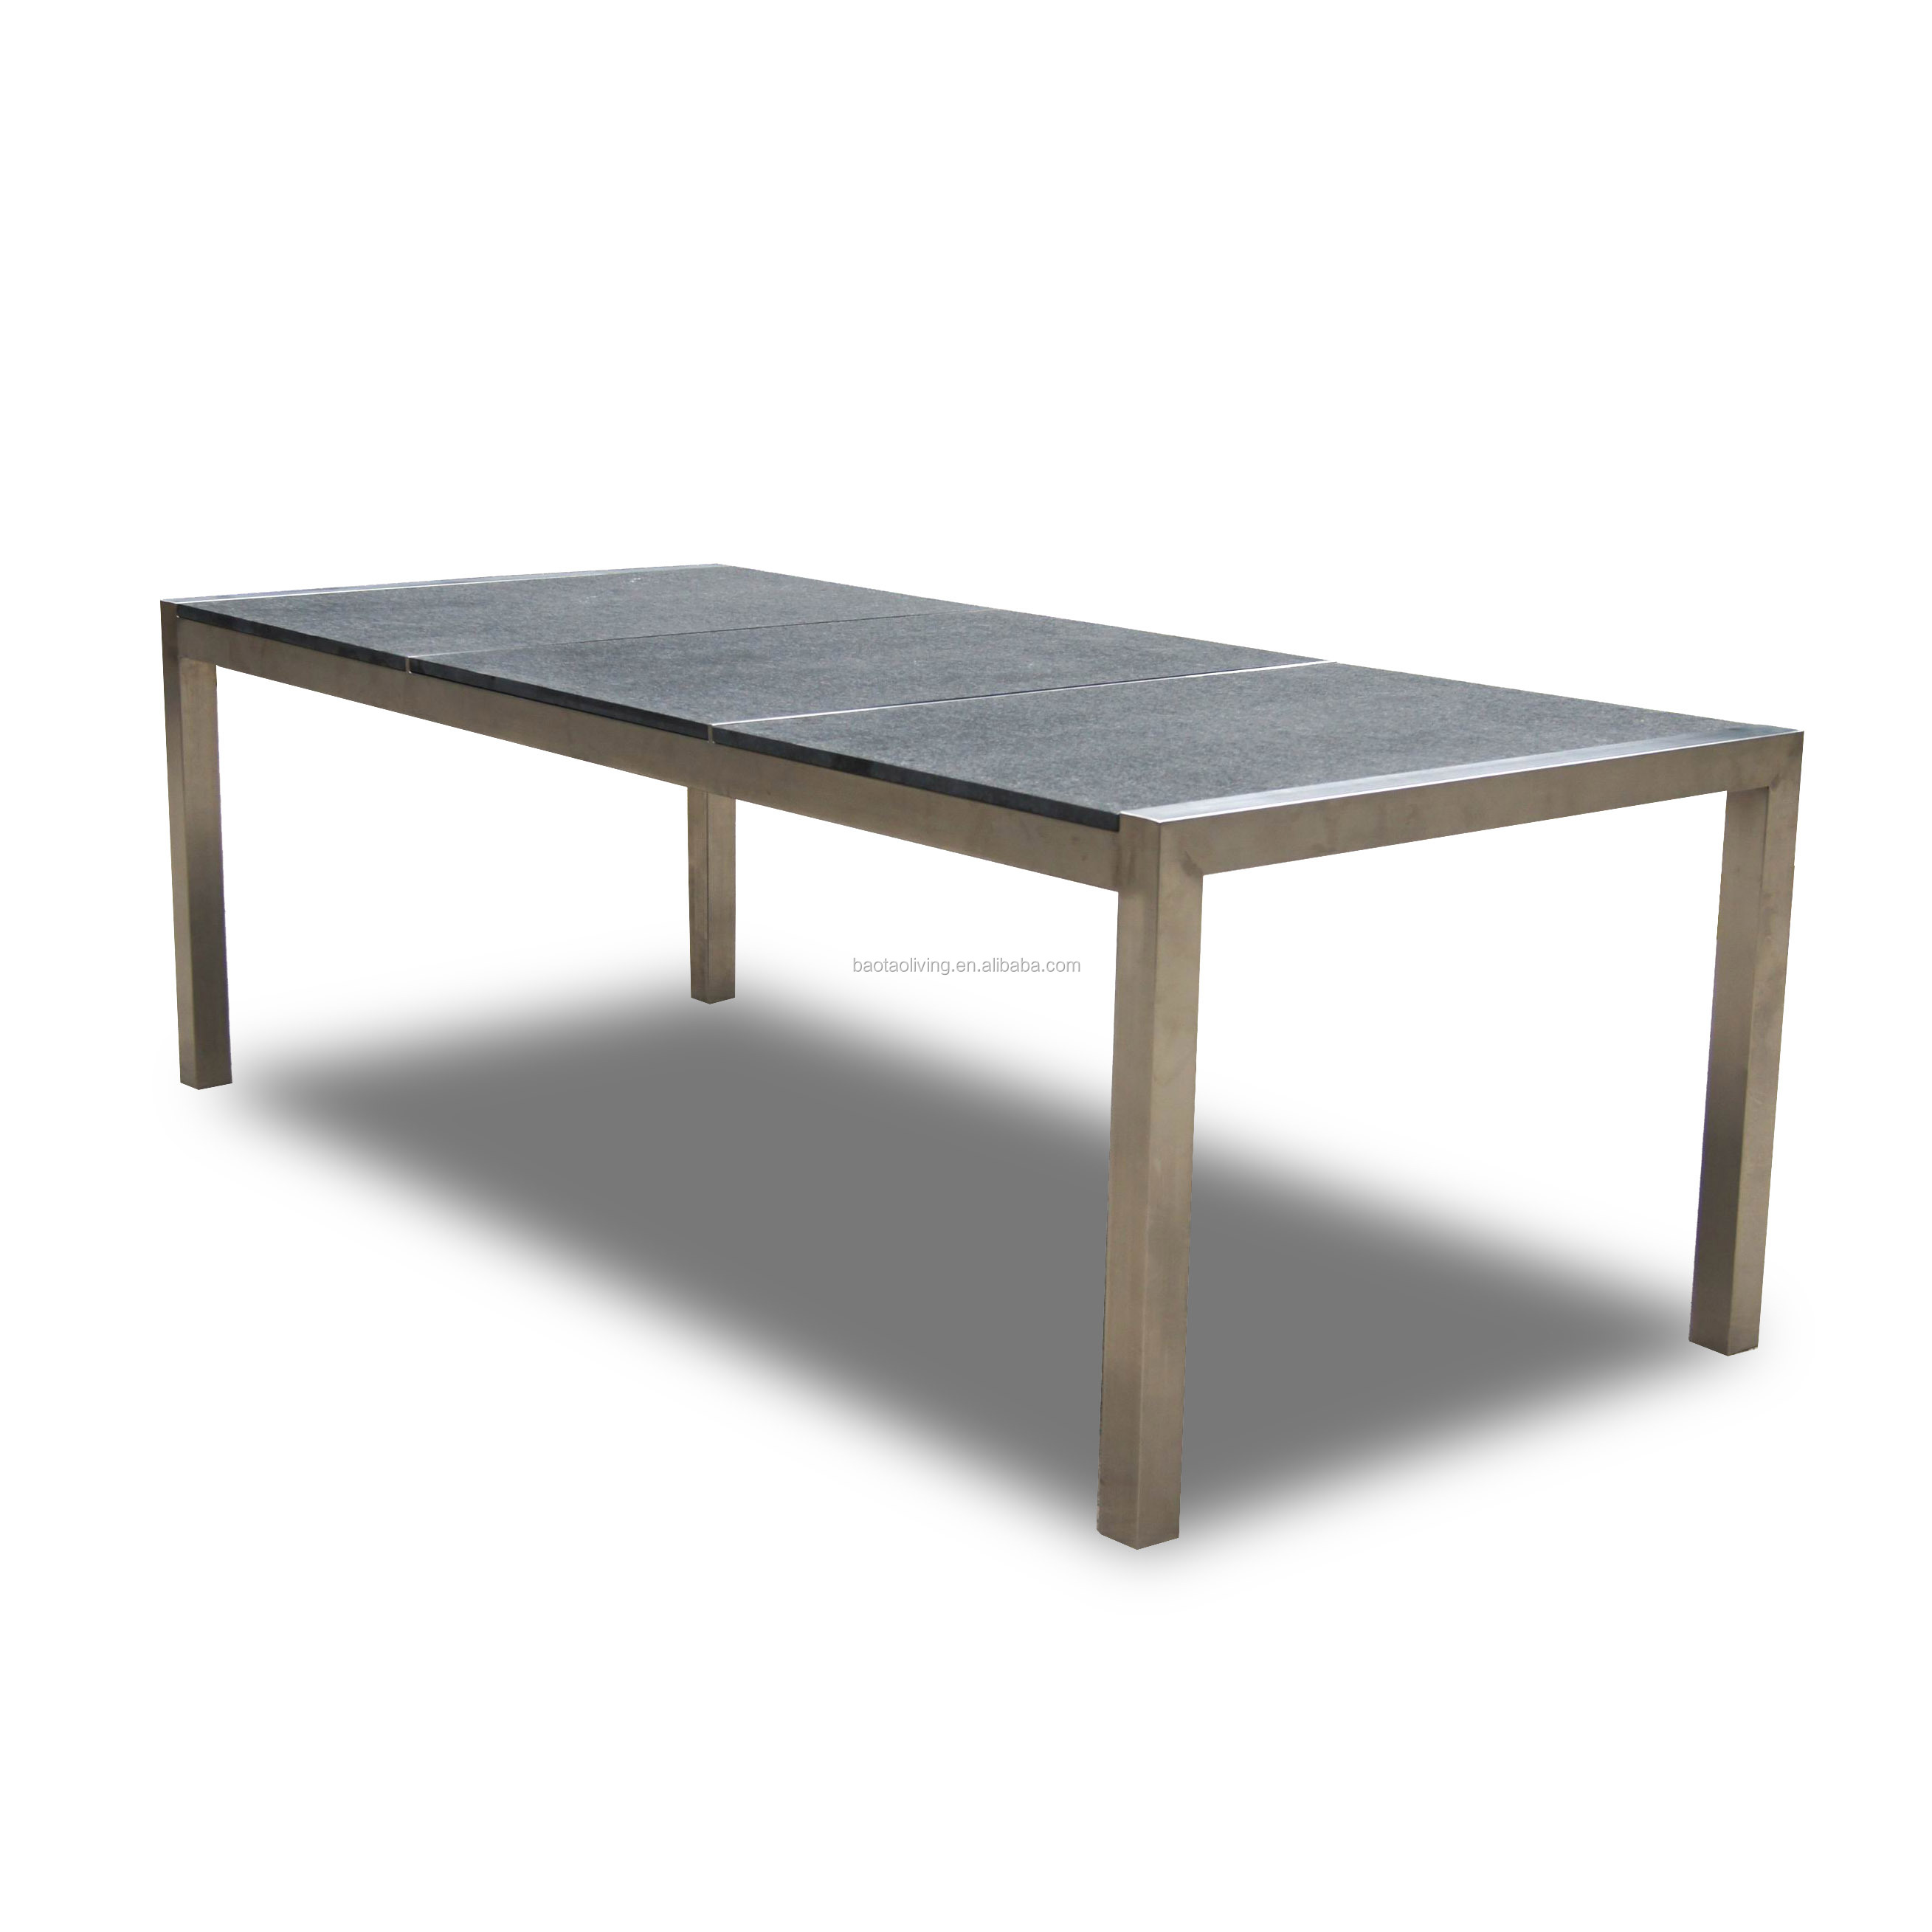 patio furniture granite stone modern outdoor stainless steel dining table buy dining table stainless steel table dining stainless table product on